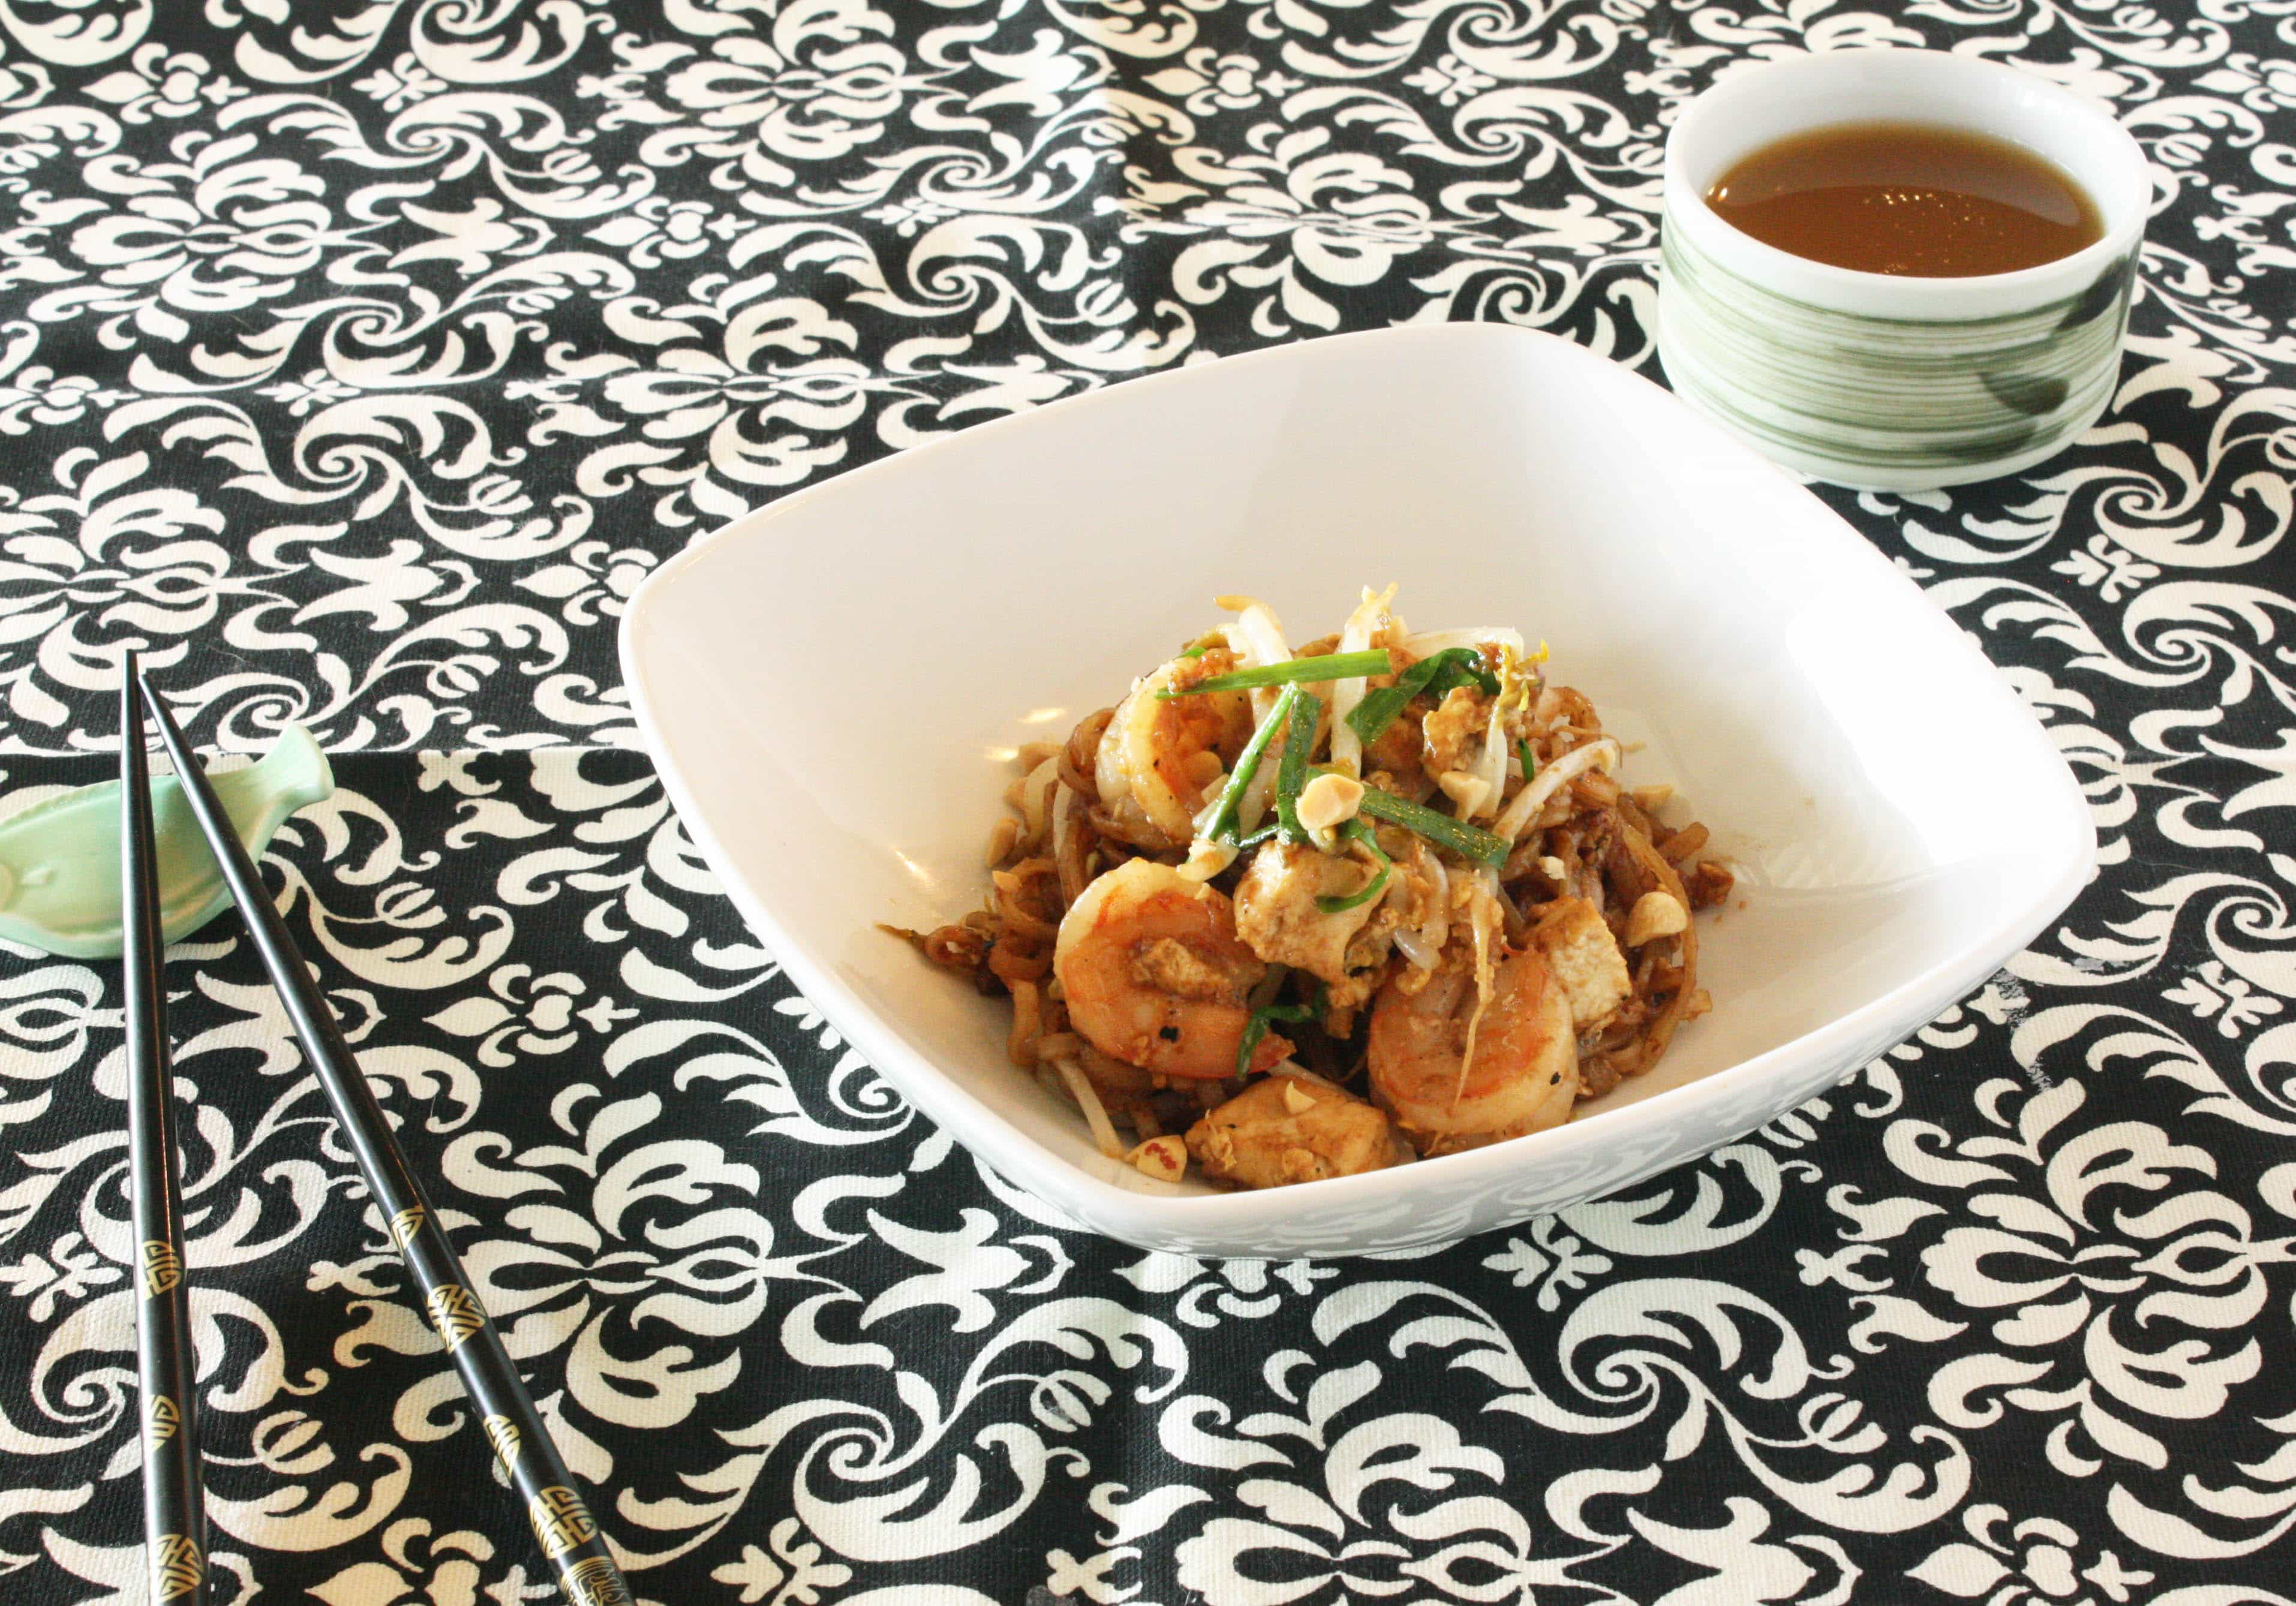 Mastering global cooking thai pad thai cake n knife i will be honest with you pad thai is easy to make once all the ingredients are ready the two things that tripped me up the first time was making tamarind forumfinder Image collections